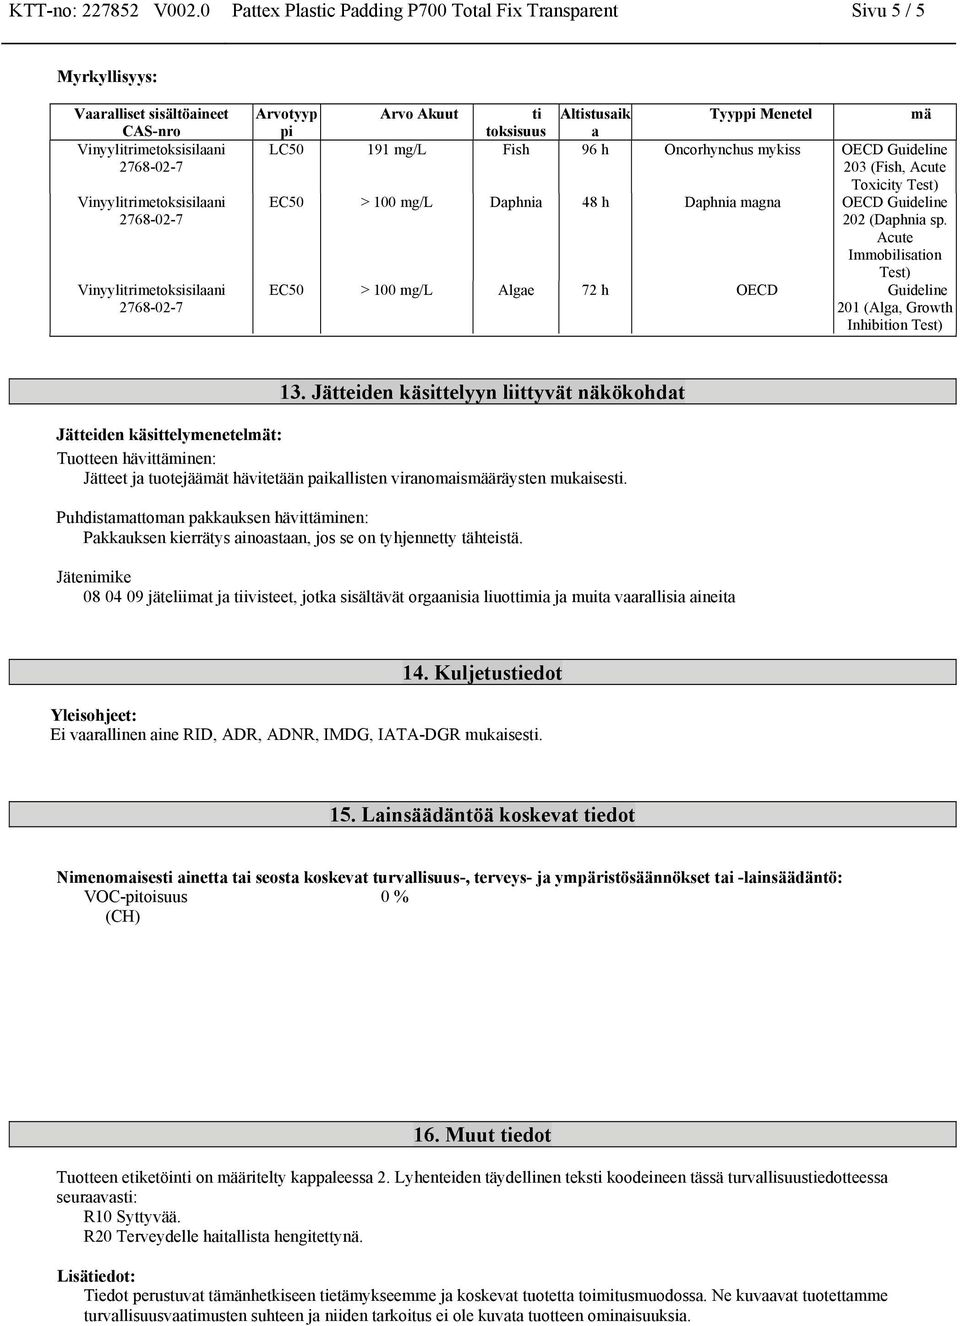 96 h Oncorhynchus mykiss OECD Guideline 203 (Fish, Acute Toxicity Test) EC50 > 100 mg/l Daphnia 48 h Daphnia magna OECD Guideline 202 (Daphnia sp.